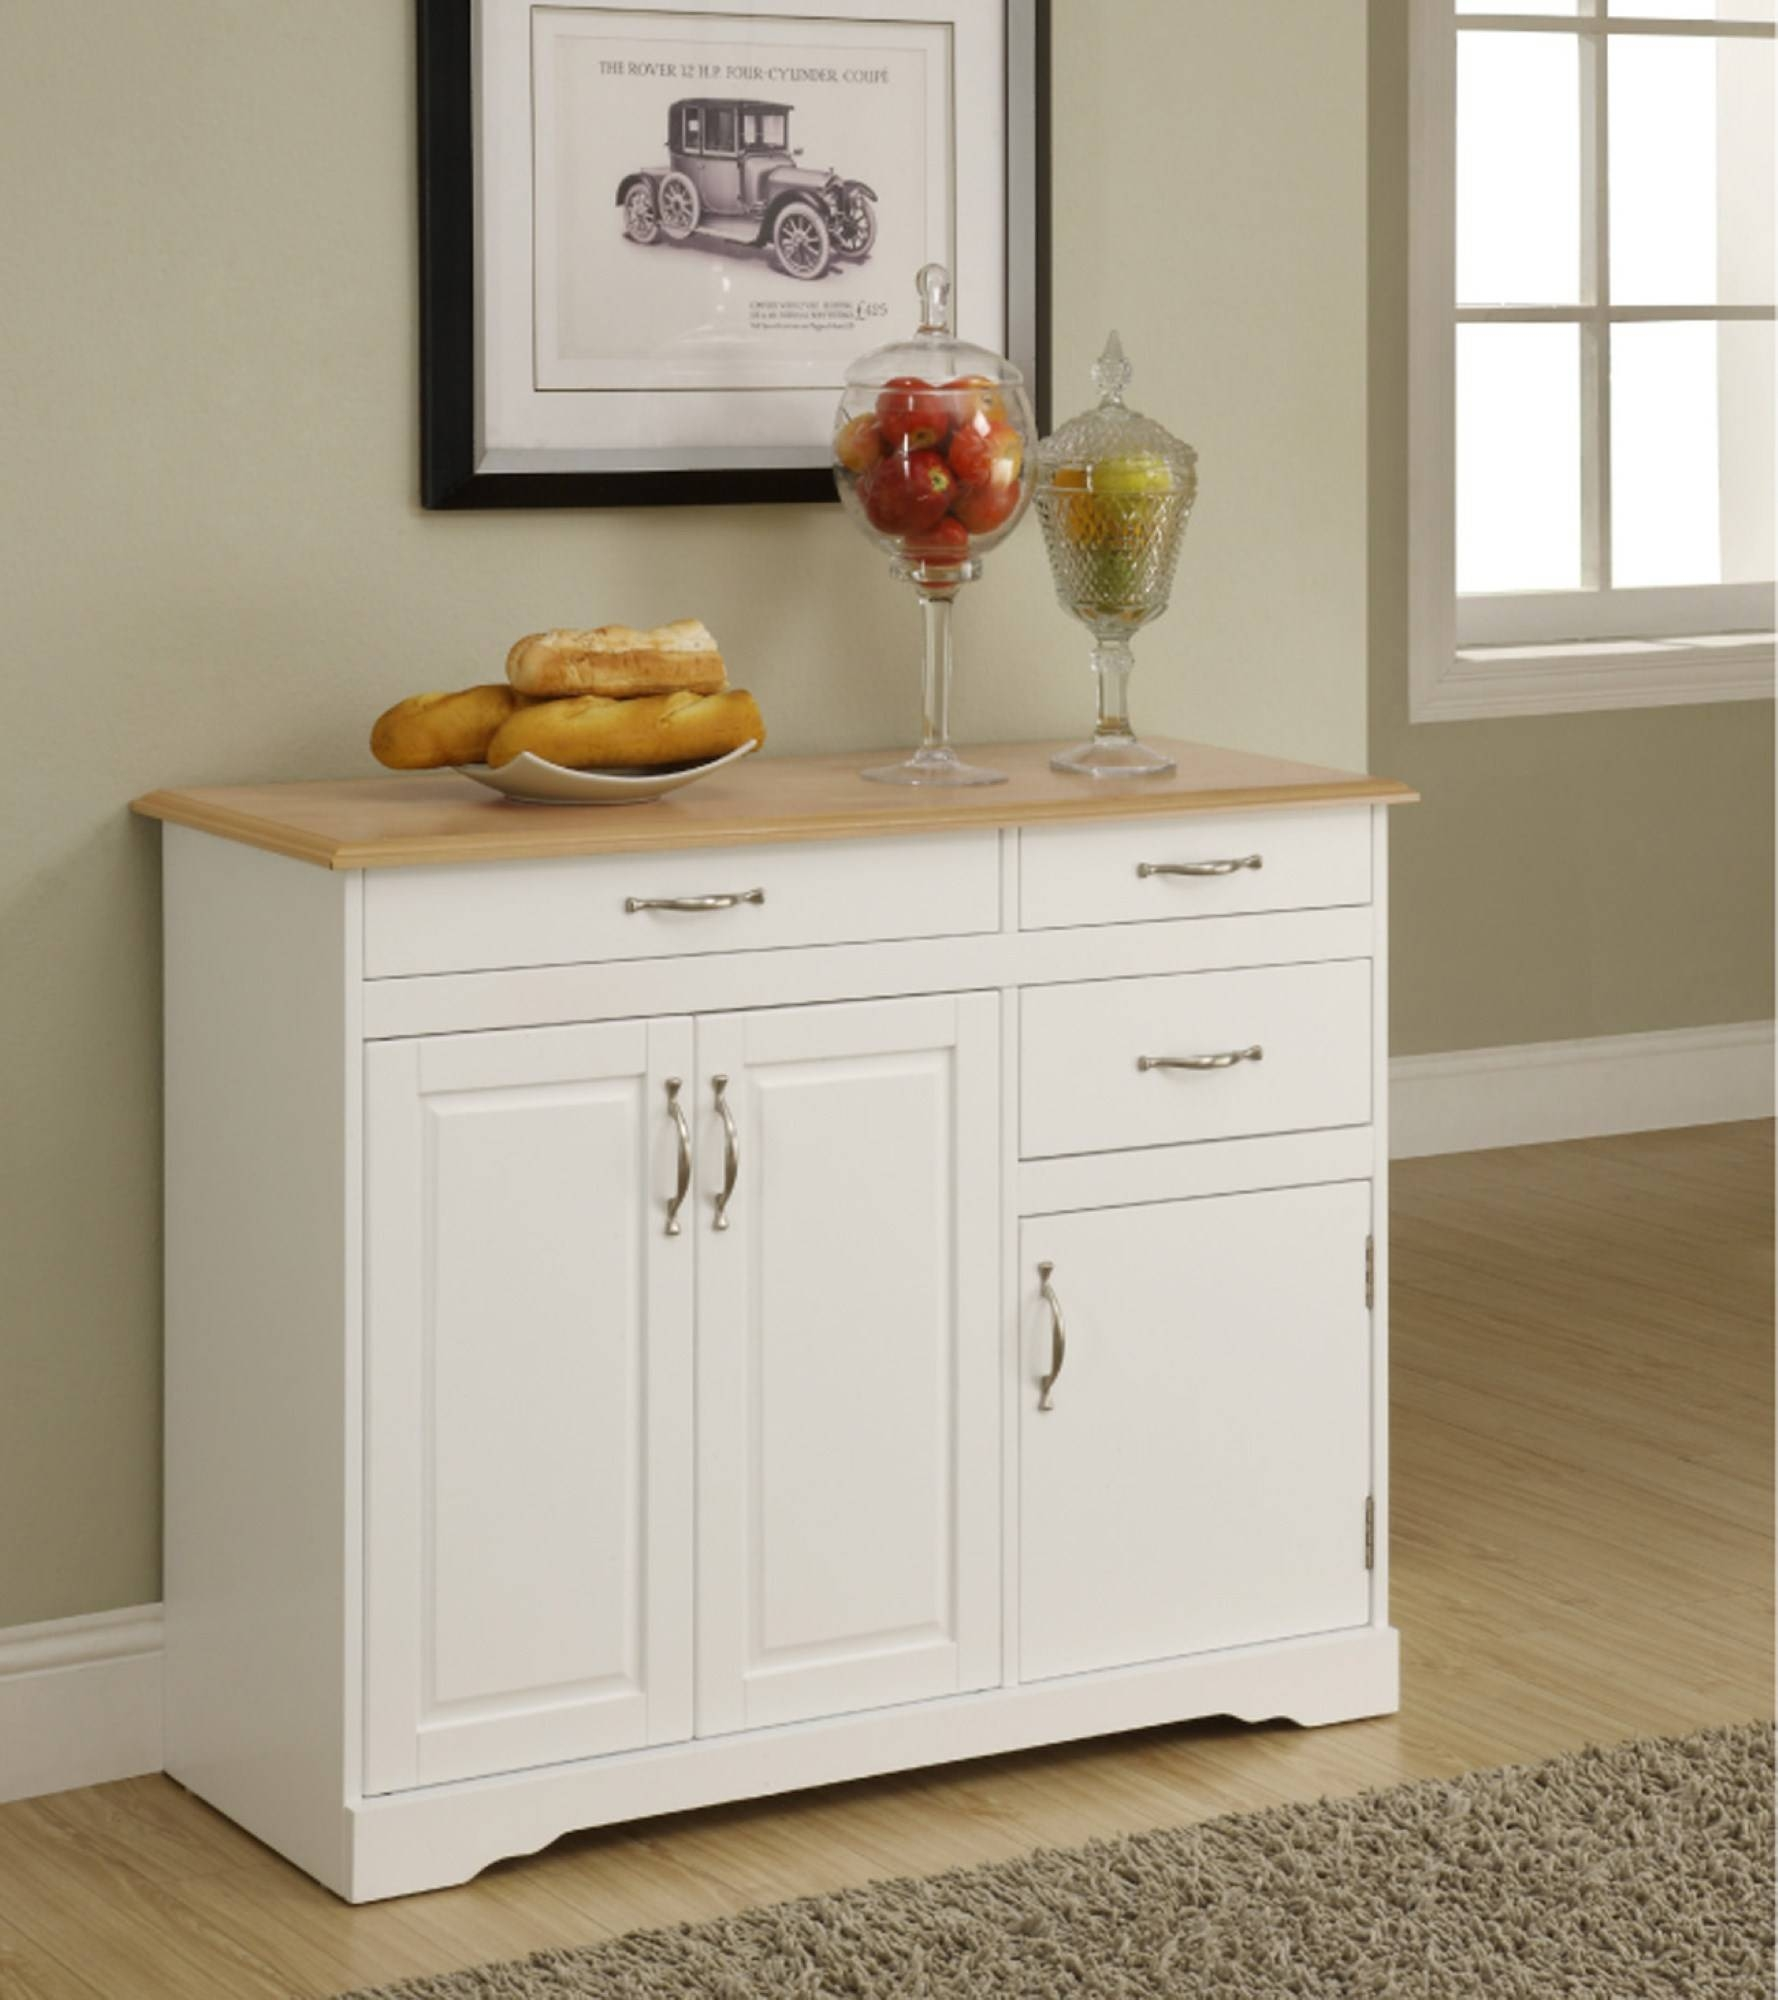 Kitchen : Small Buffet Hutch Small Kitchen Hutch Buffet Server Intended For Small Sideboards And Buffets (#4 of 15)